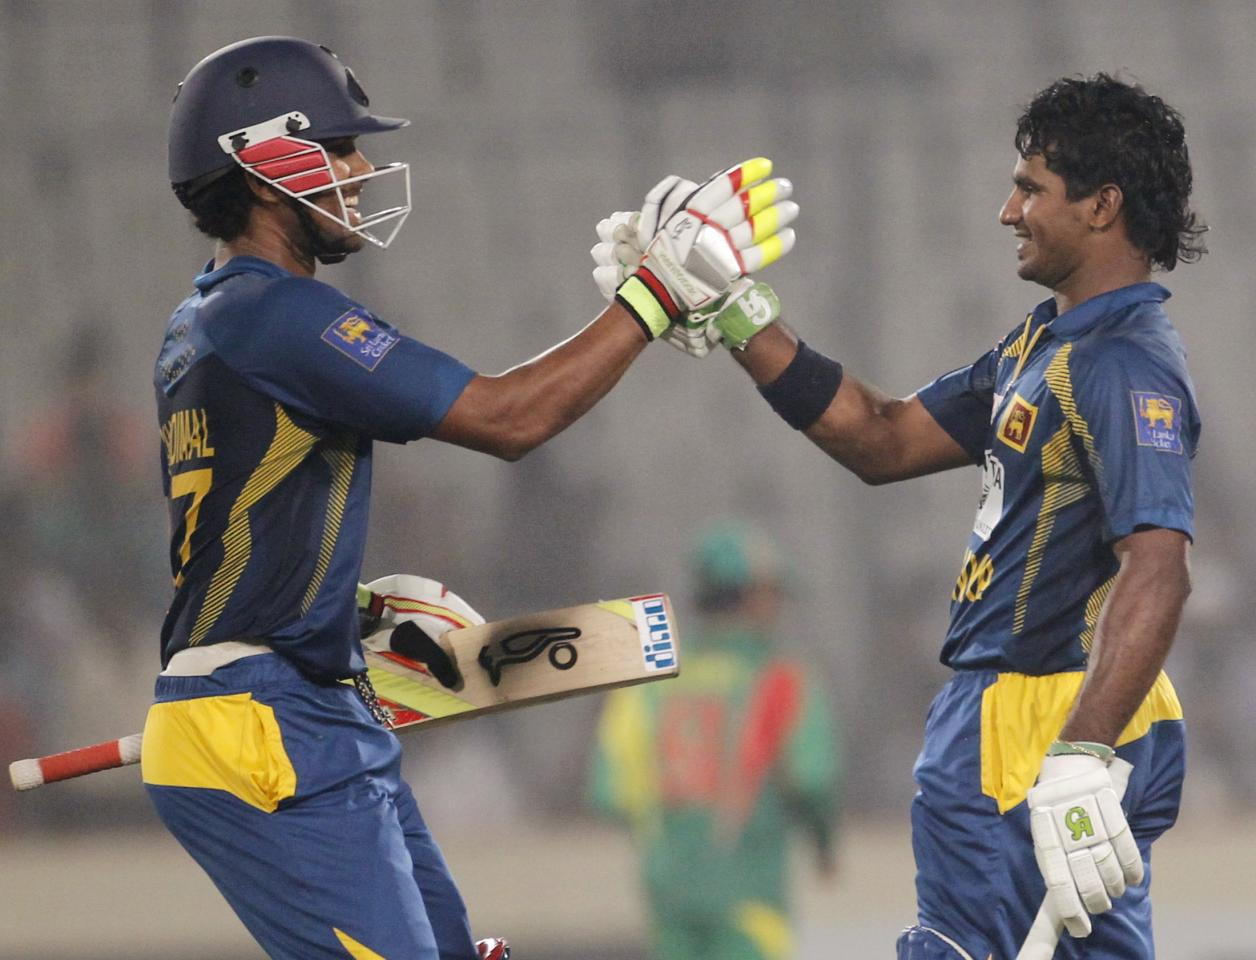 Sri Lanka's Dinesh Chandimal (L) congratulates team mate Kusal Perera after he scored a century against Bangladesh during their third one day international (ODI) cricket match of the series in Dhaka February 22, 2014. REUTERS/Andrew Biraj (BANGLADESH - Tags: SPORT CRICKET)